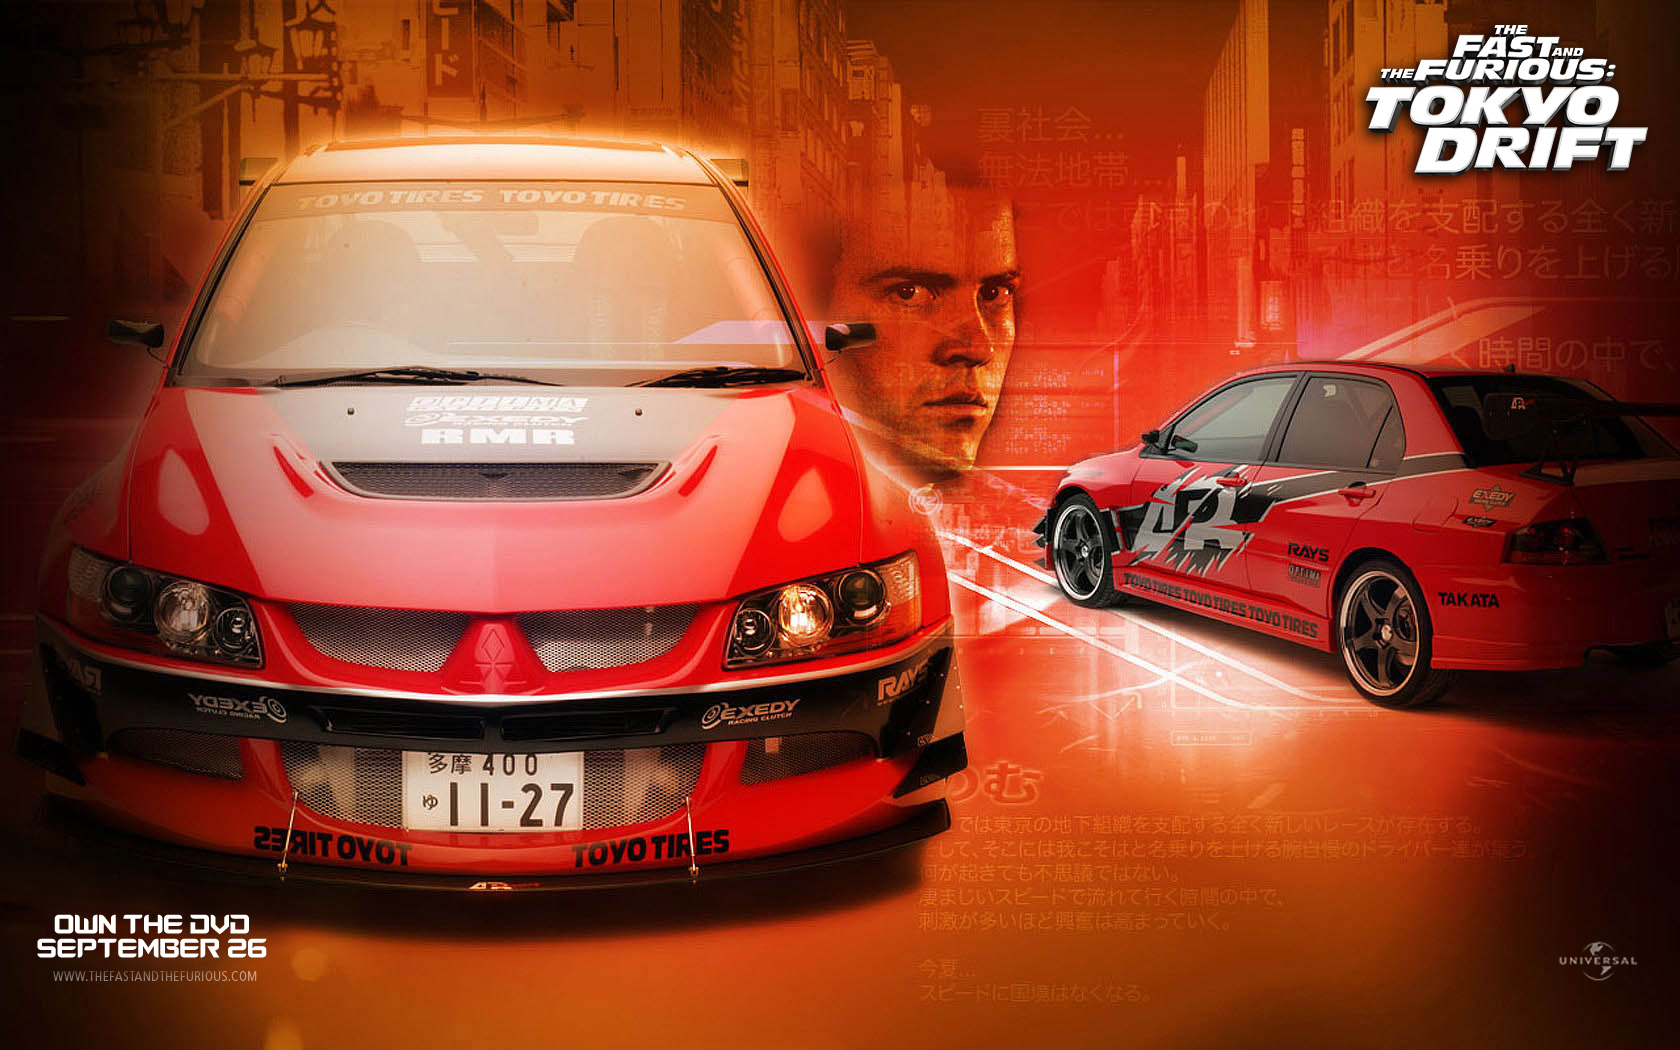 Tokyo Drift Wallpaper - Fast and Furious Wallpaper (367267 ...